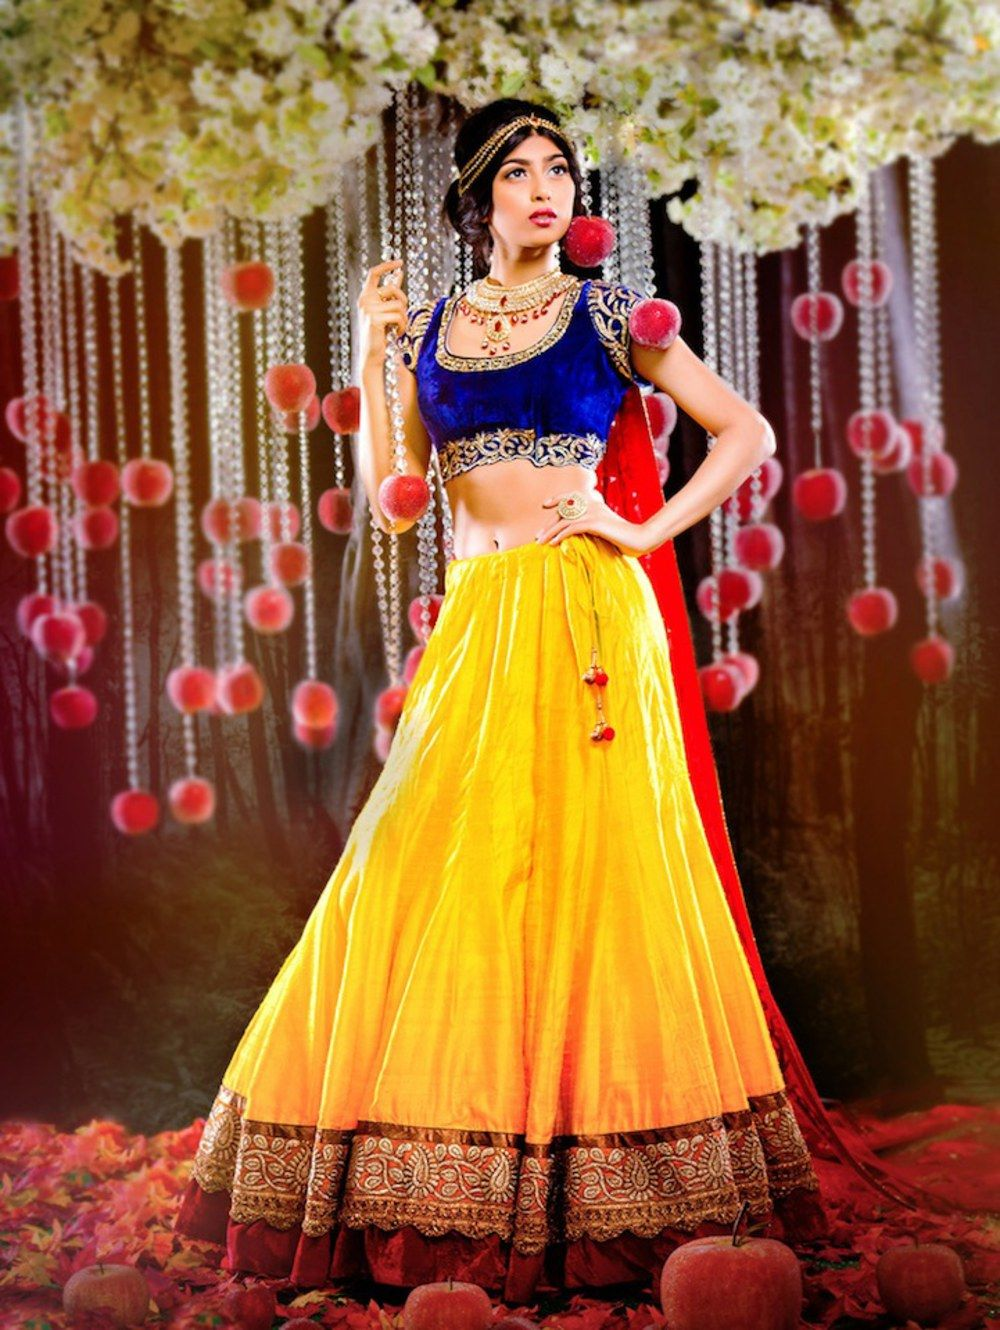 Disney wedding dresses jasmine  Princesses Disney  Un artiste les transforme en mariées Bollywood